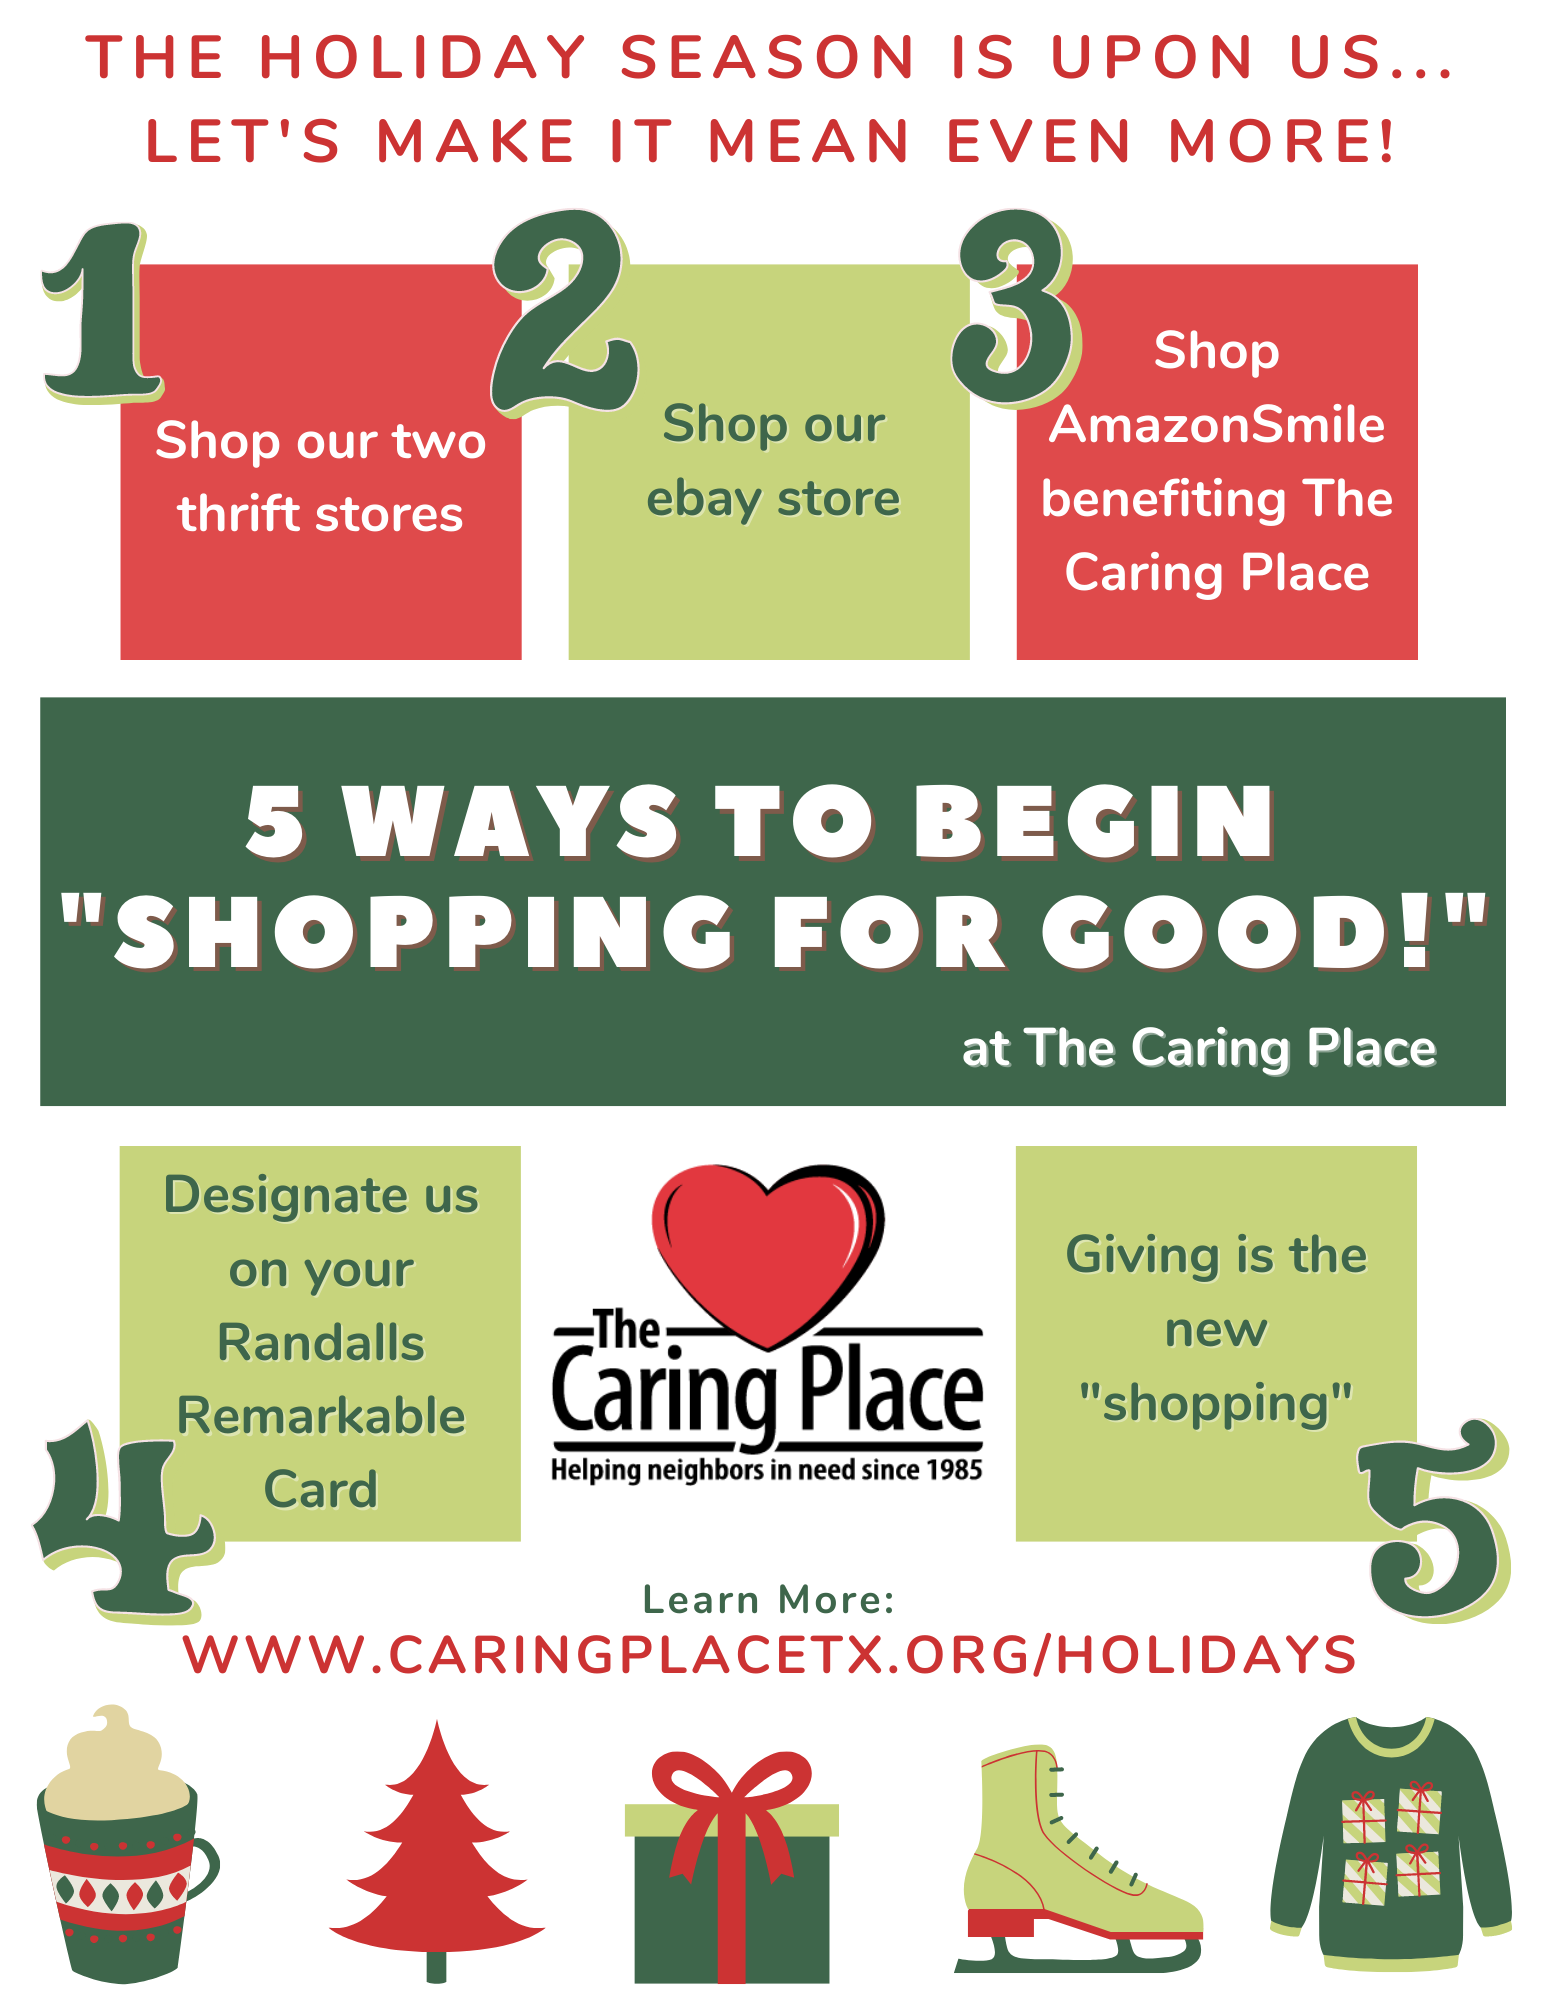 5 Ways to Begin Shopping for Good this Holiday Season...